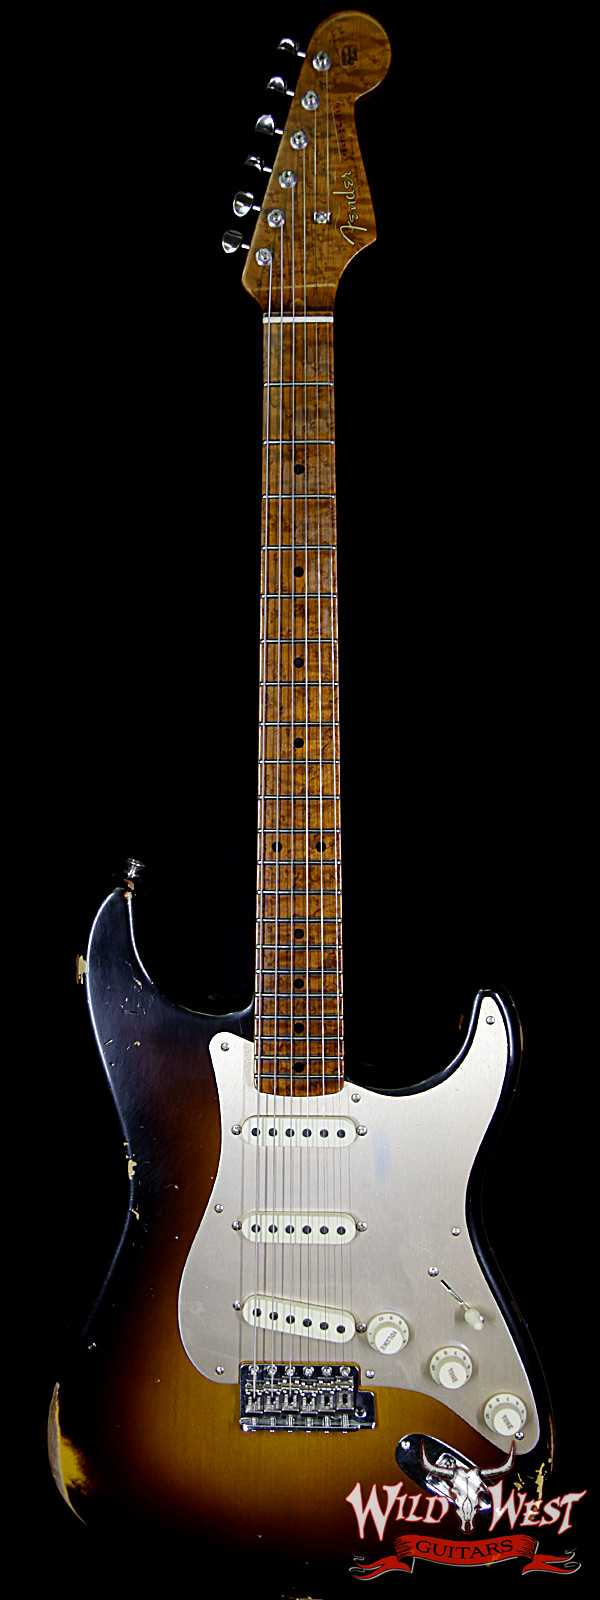 Fender Custom Shop Roasted 1956 Stratocaster Relic Birdeye Maple Neck 2 Tone Sunburst